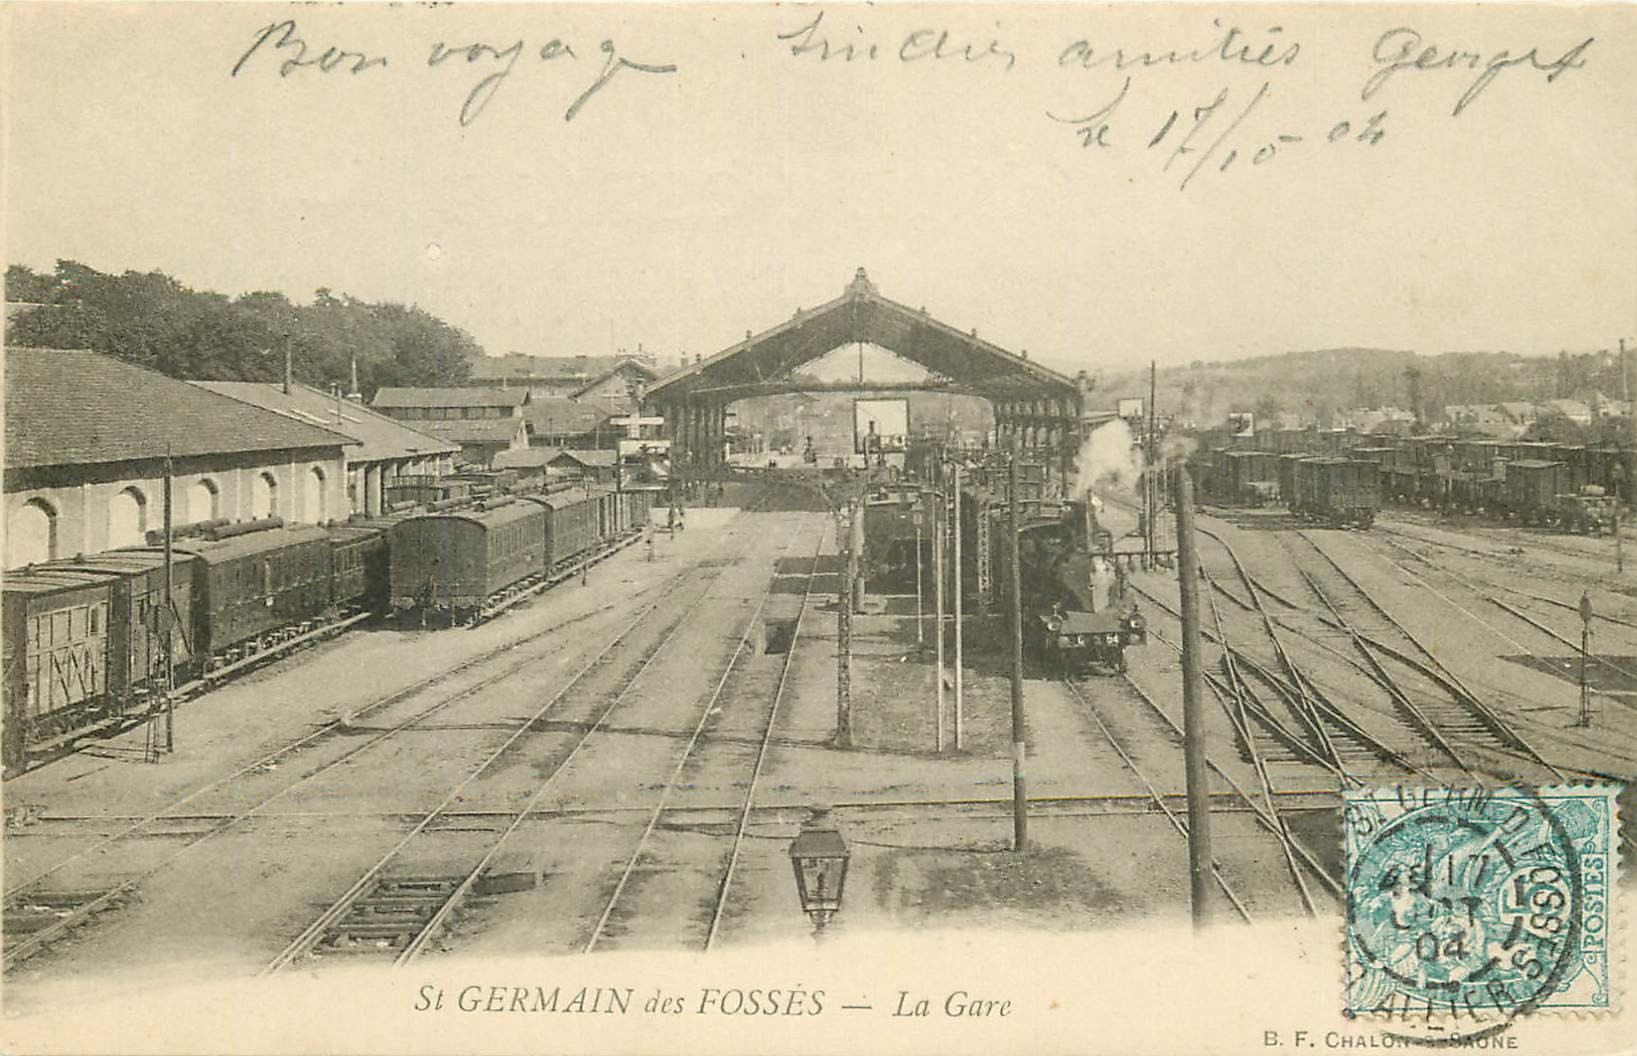 03 SAINT-GERMAIN DES FOSSES. Trains en Gare 1904